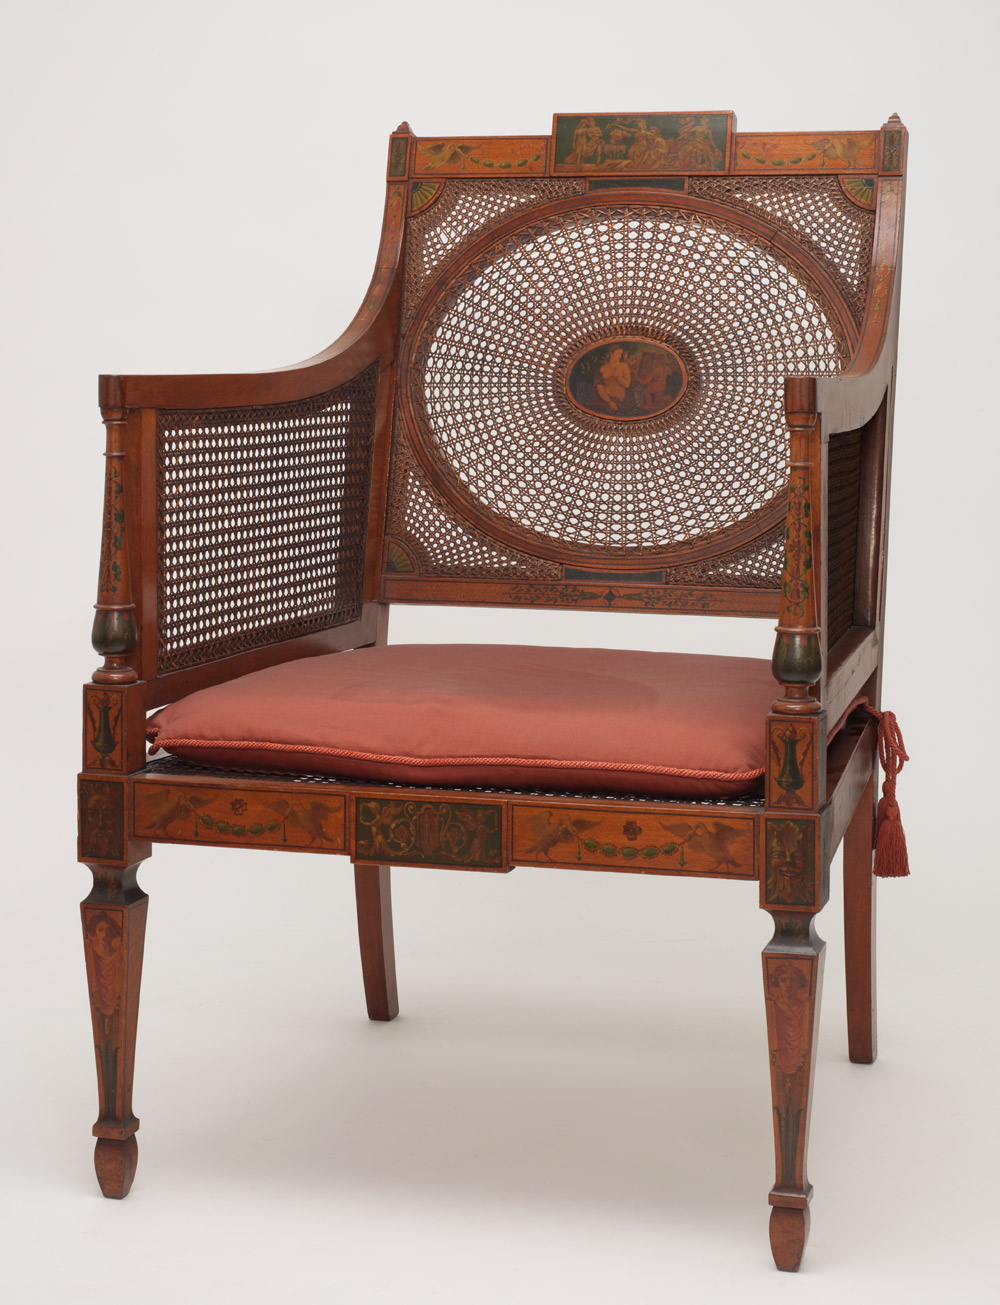 Bryson Burroughs and Willard Parker Little Armchair